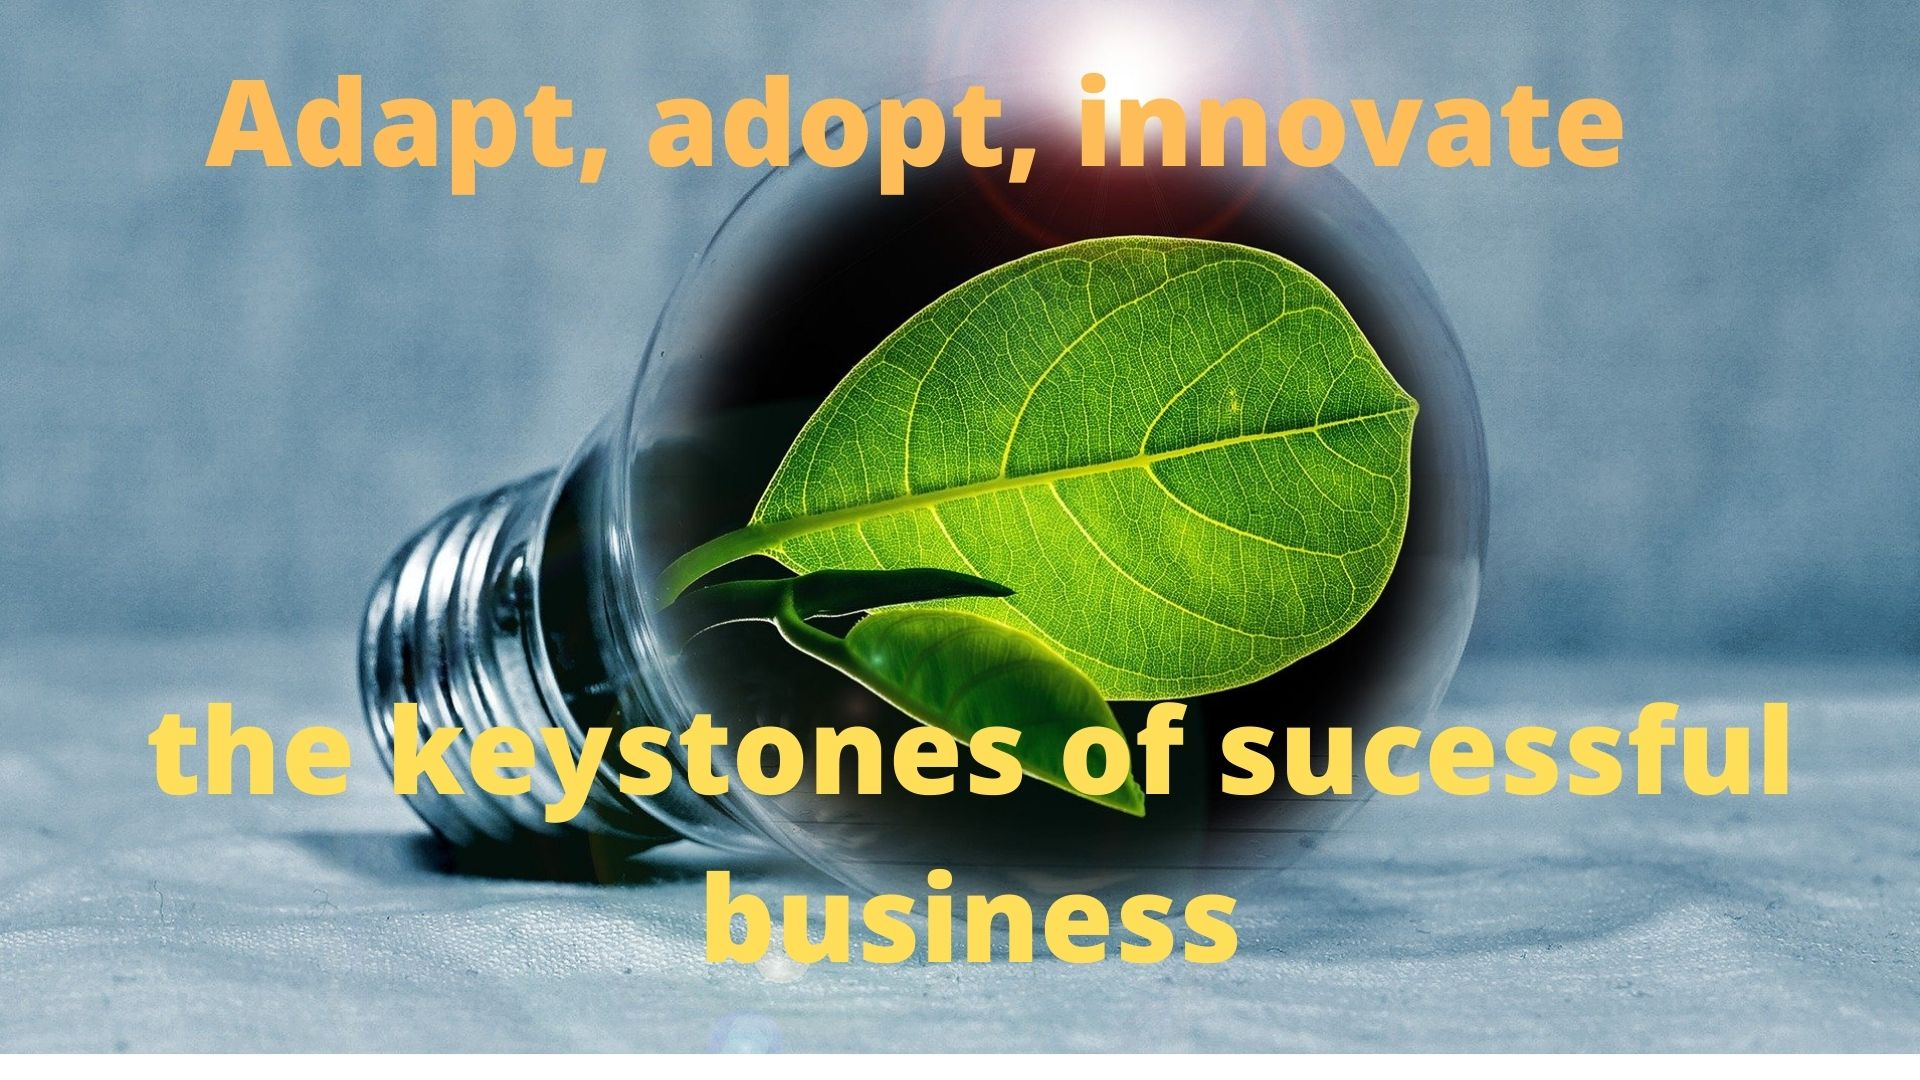 Adopt, adapt and innovate - the keystones of successful business